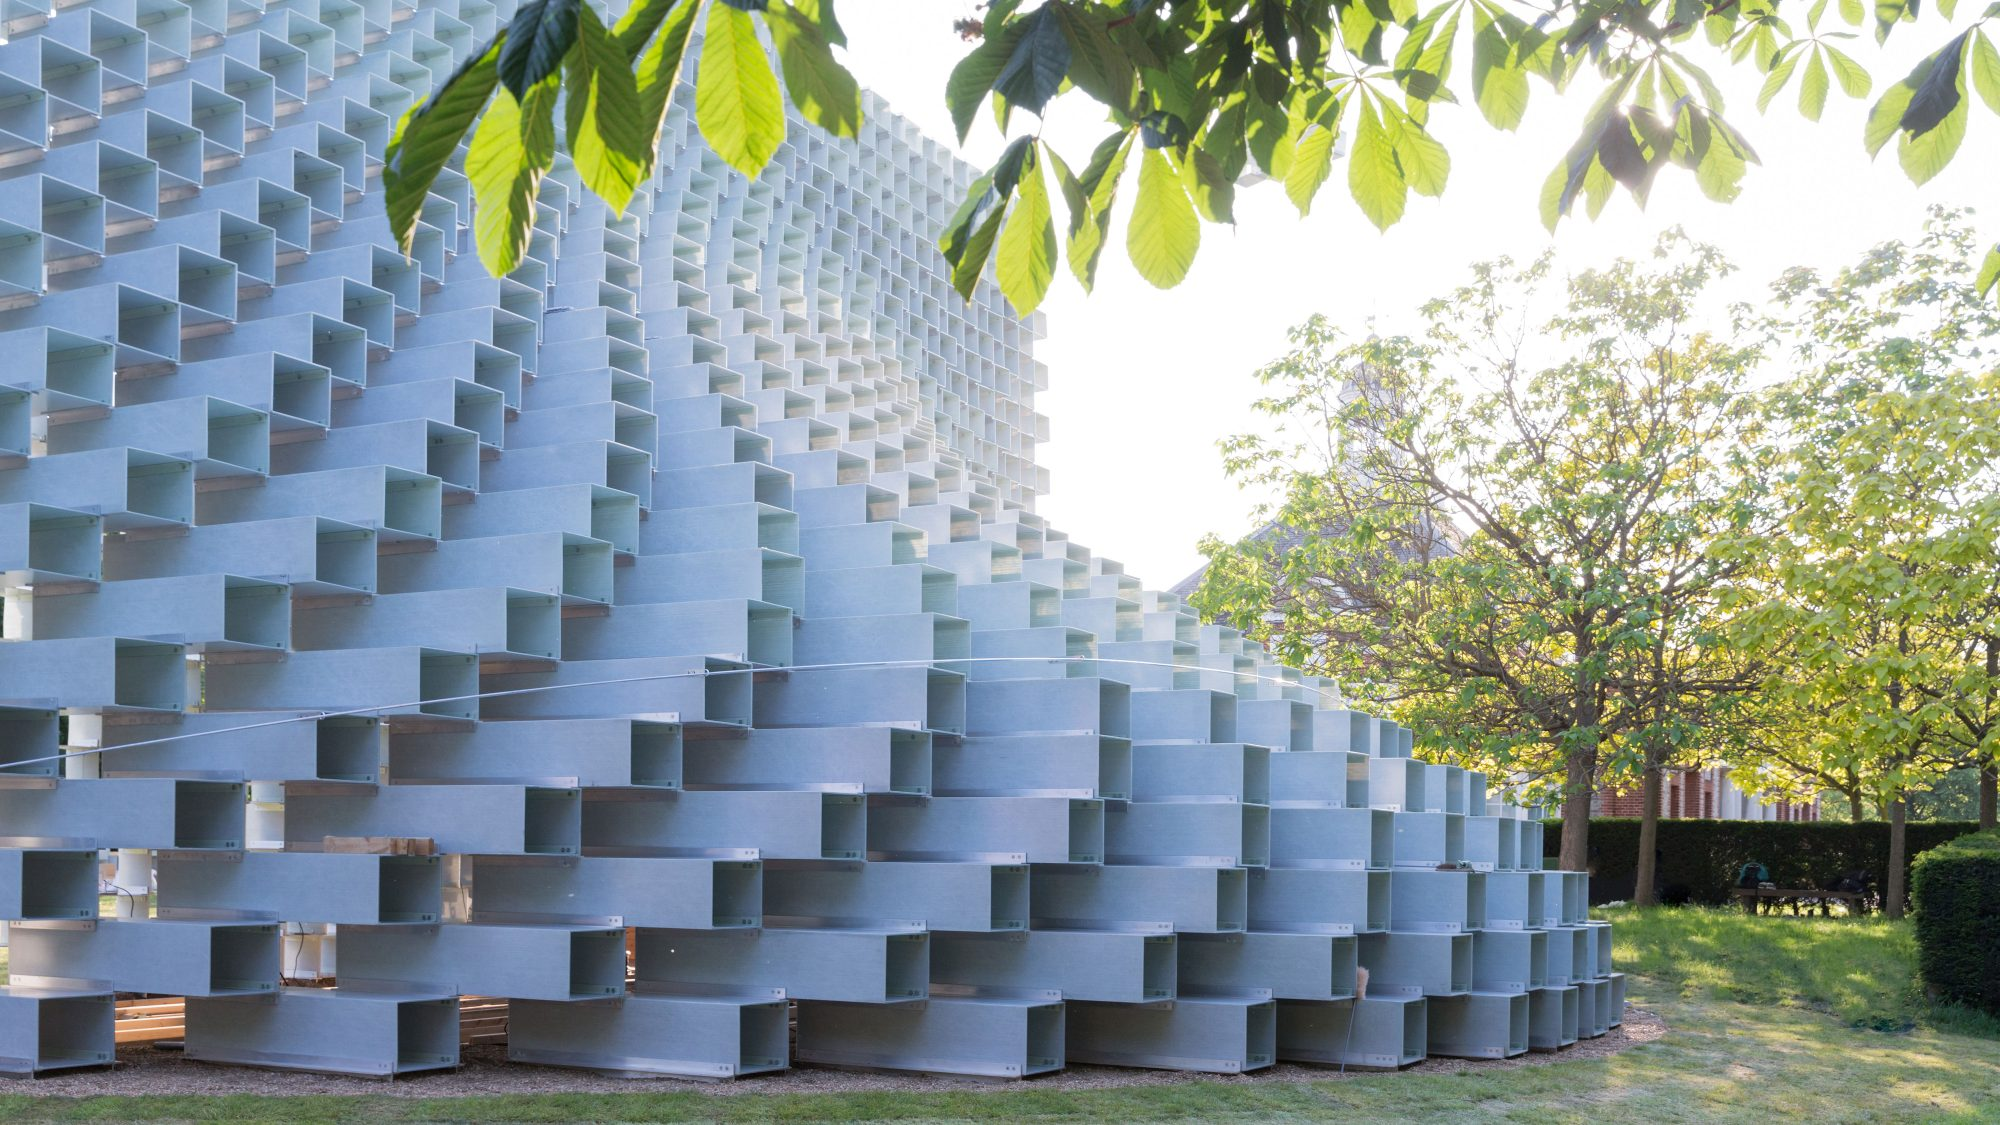 serpentine-summer-pavilion-2-FT-BLOG0716.jpg